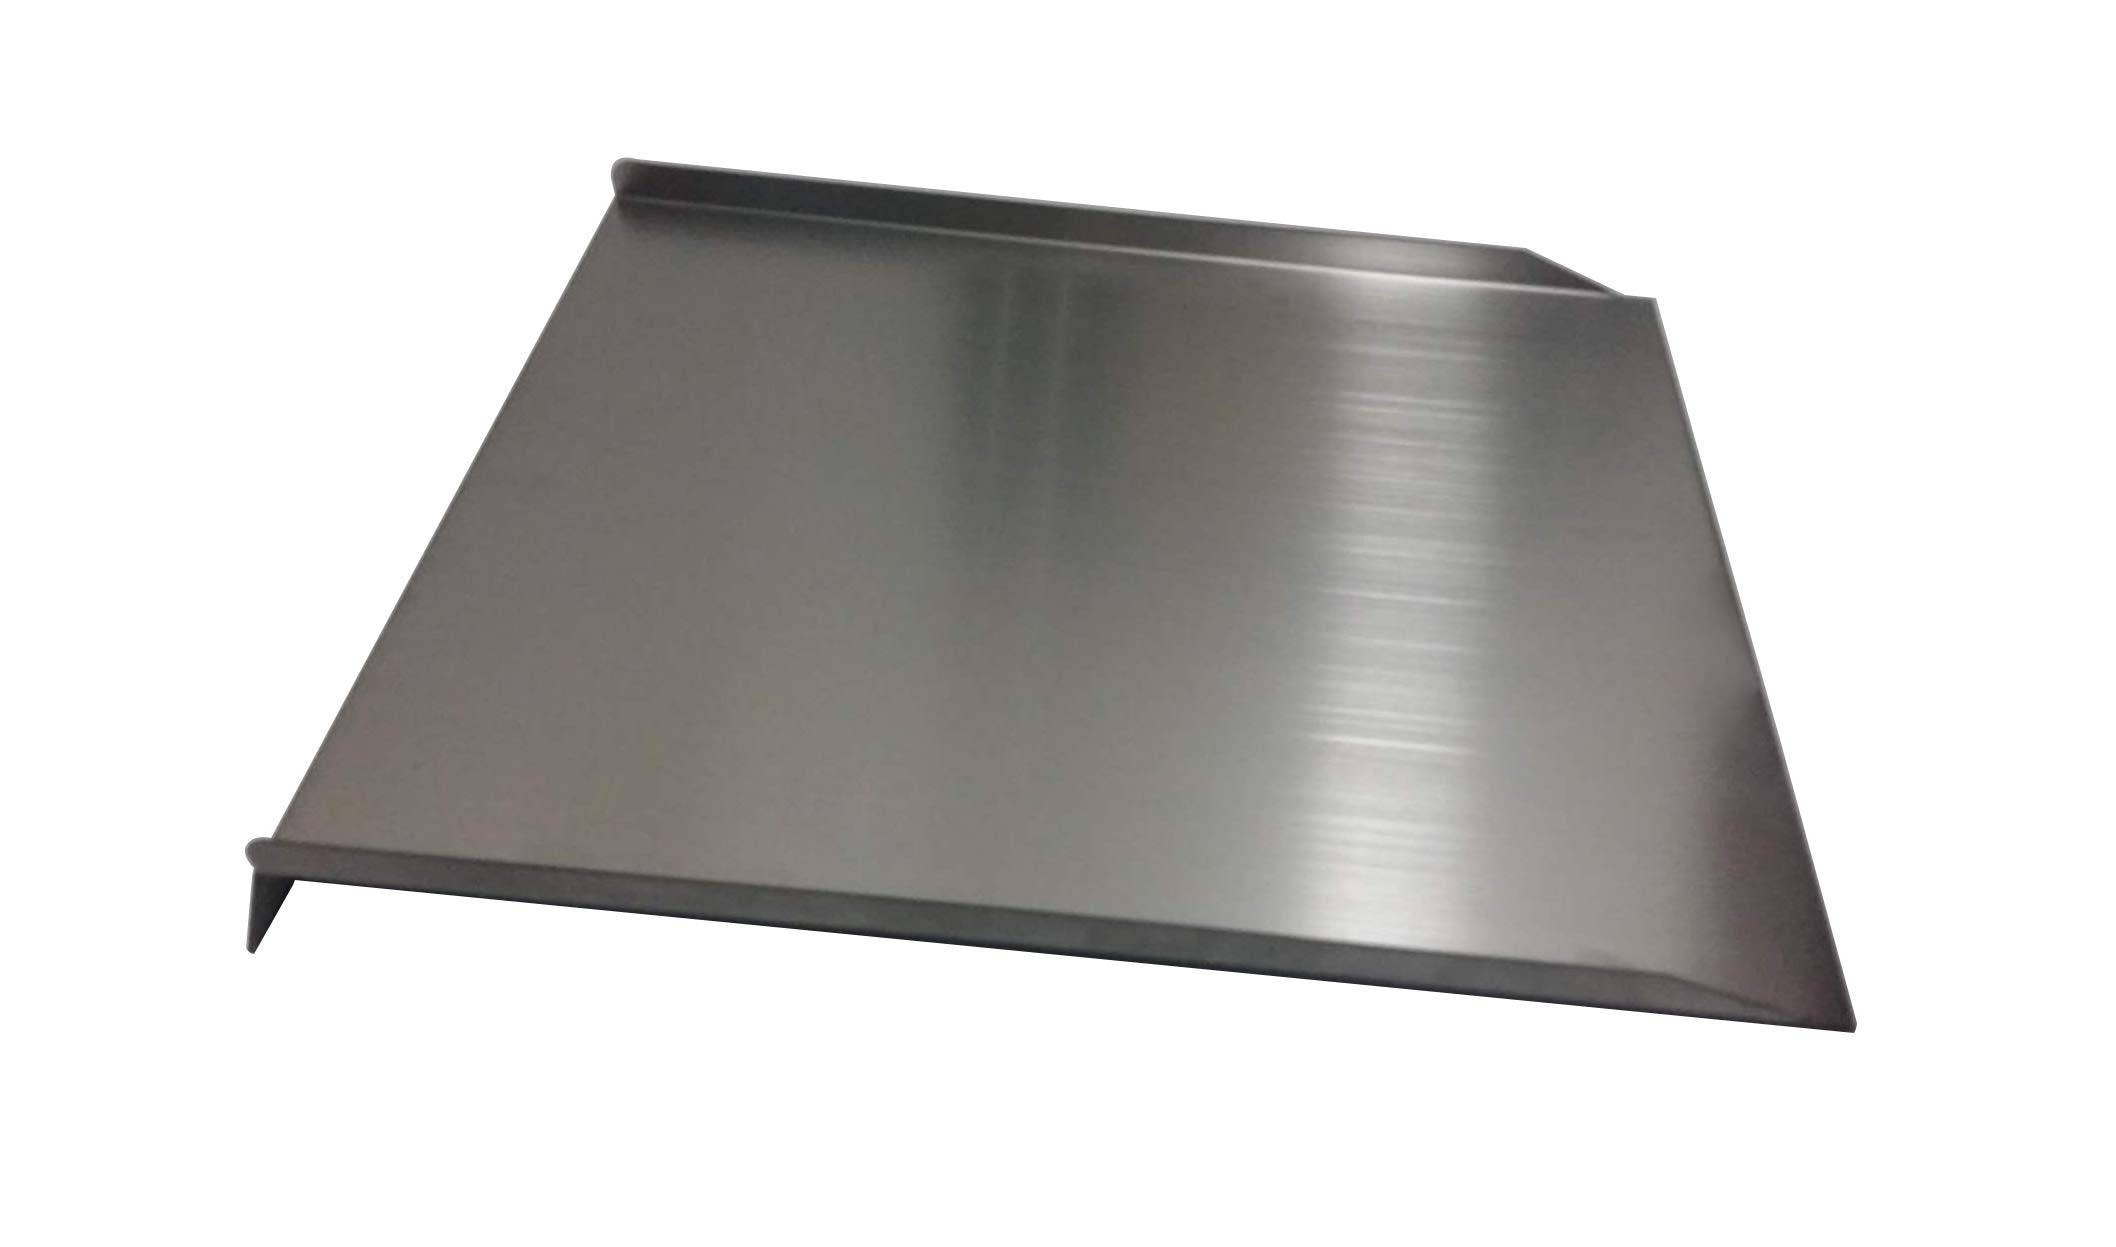 Cookingstar Steel Drip Pan Heat Baffle, Replacement for Traeger Pellet Smoker Grill, Traeger 34 Series, 32.5'' x 15.75'' BAC-006